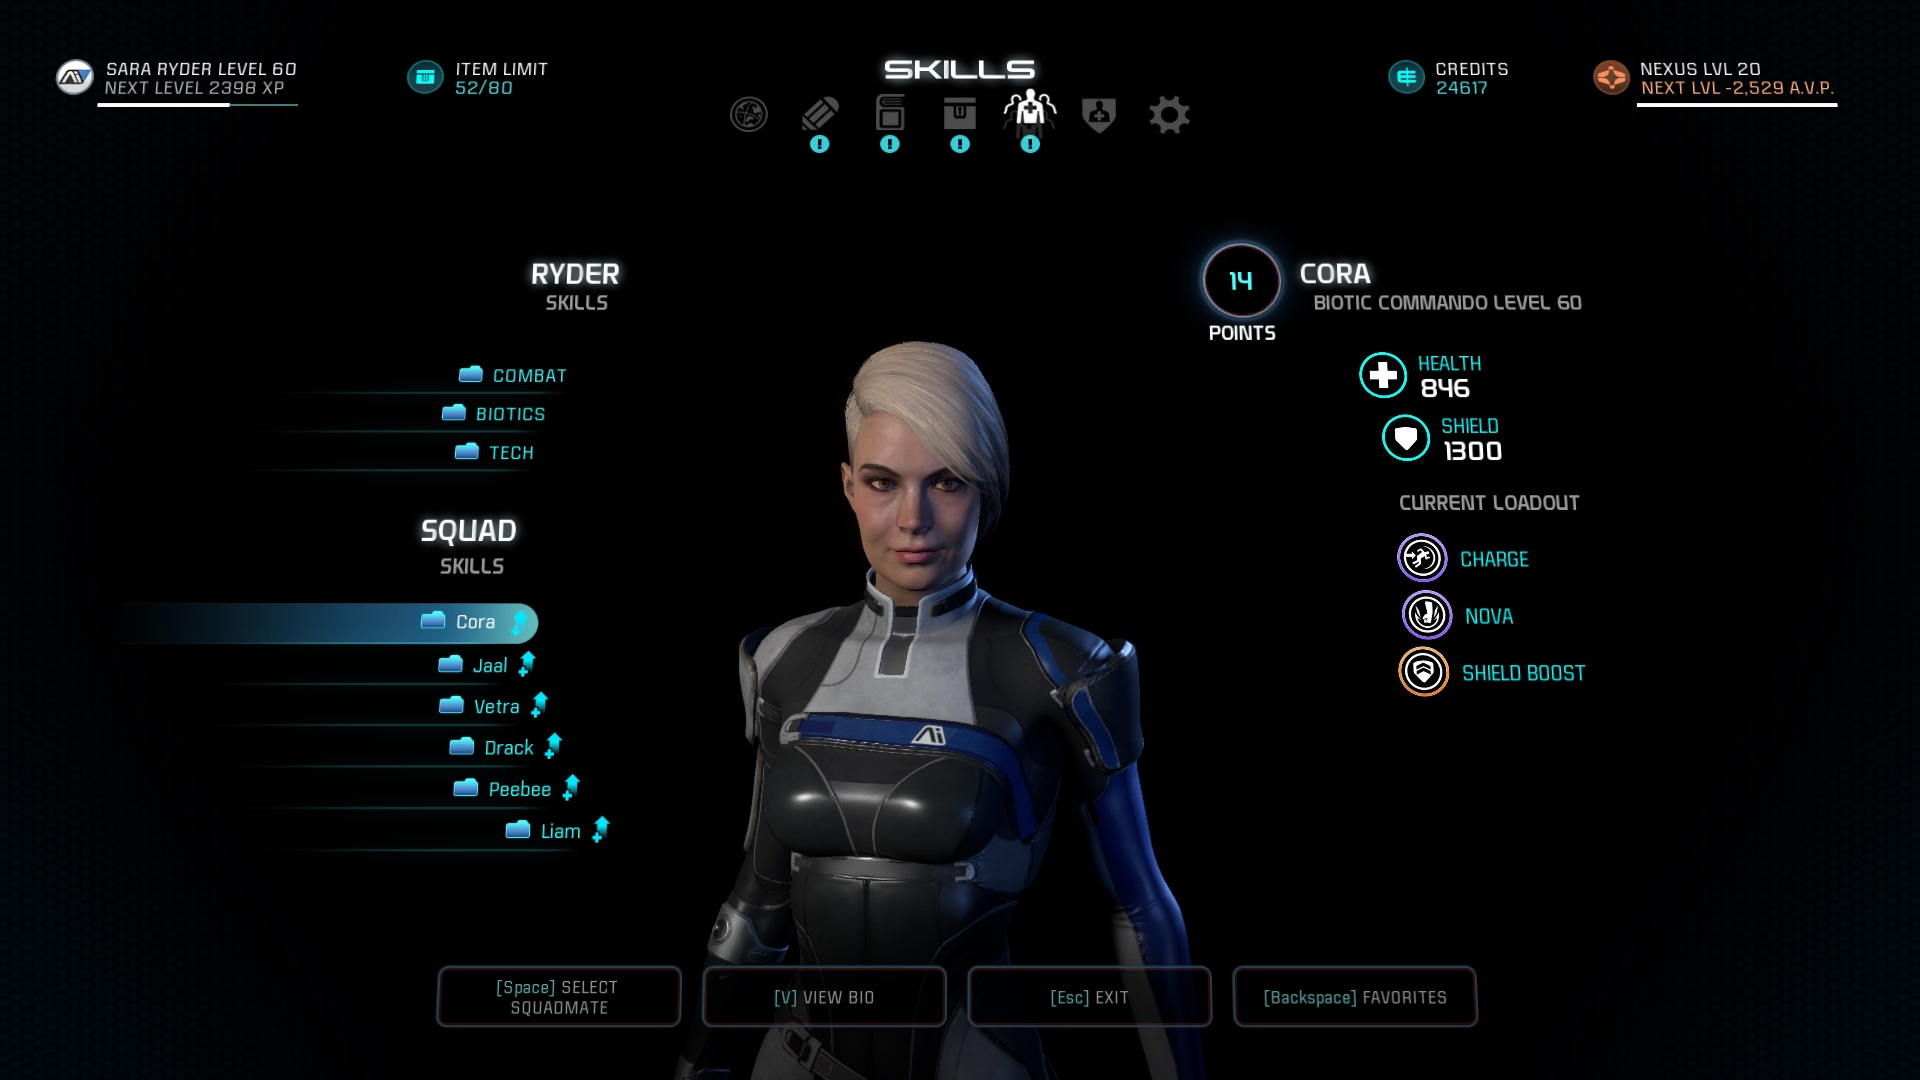 Re: Massive difference in health and Shields between Ryder and squadmates -  Answer HQ